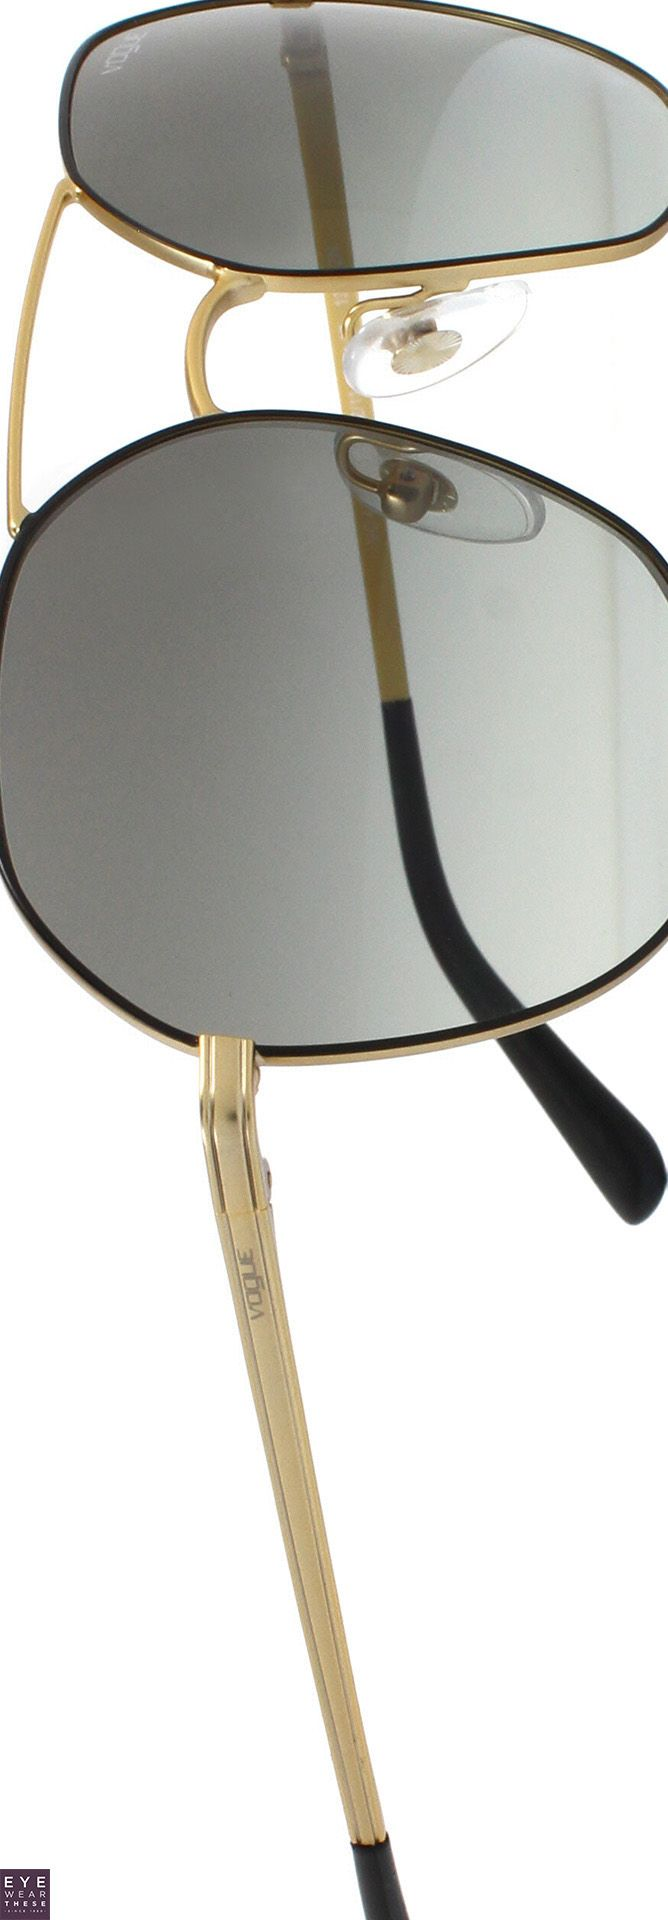 Round Vogue 4061S sunglasses for women with double bridge and the Vogue logo on each temple | EyeWearThese | #vogue #sunglasses #eyewear #fashion